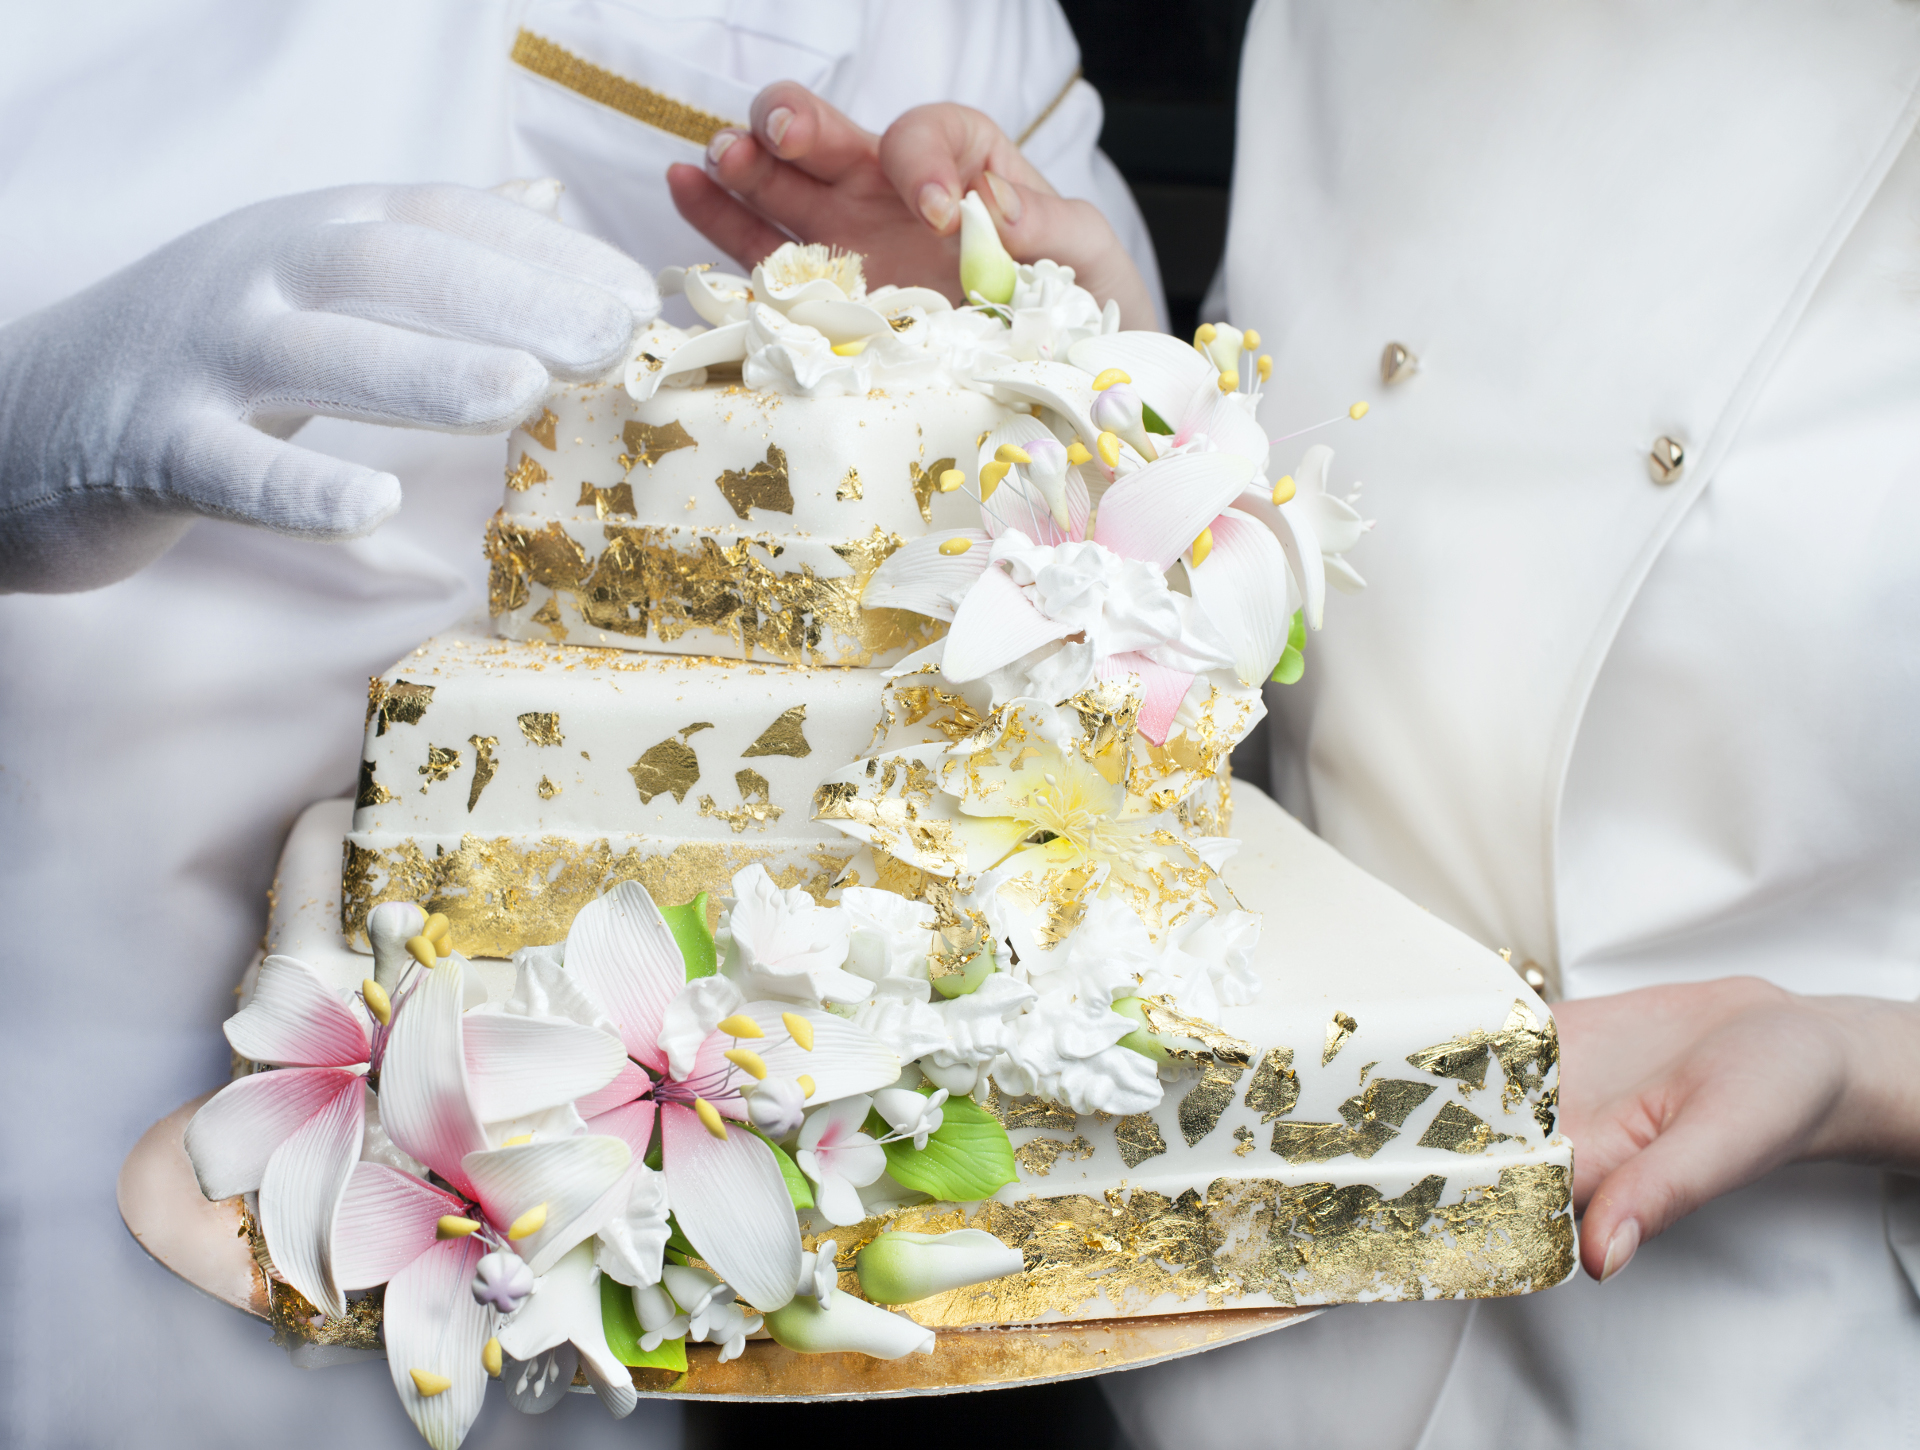 Edible Gold Leaf for Cakes